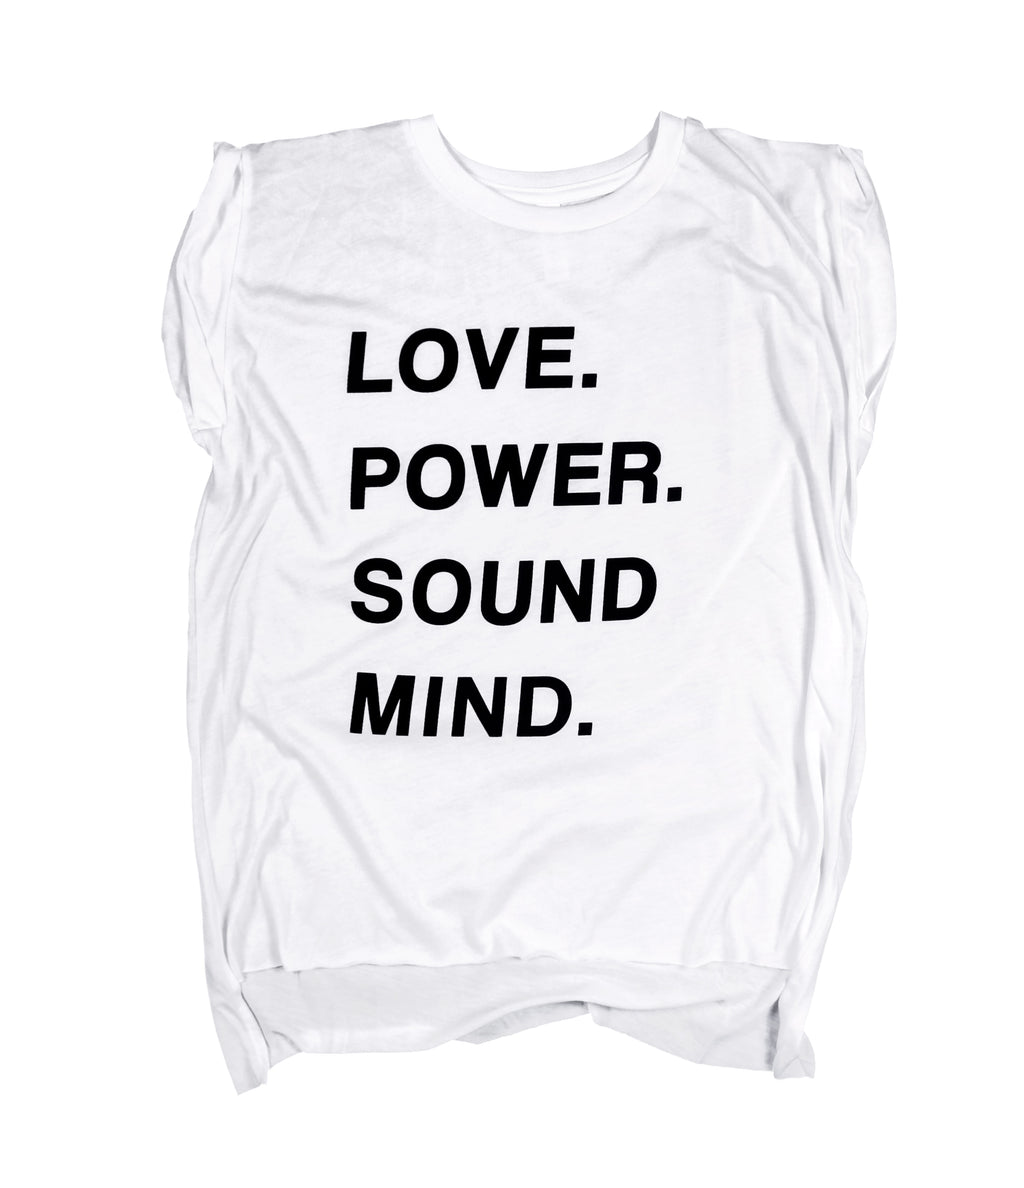 LOVE POWER SOUND MIND WHITE WOMEN'S ROLLED CUFF MUSCLE T-SHIRT